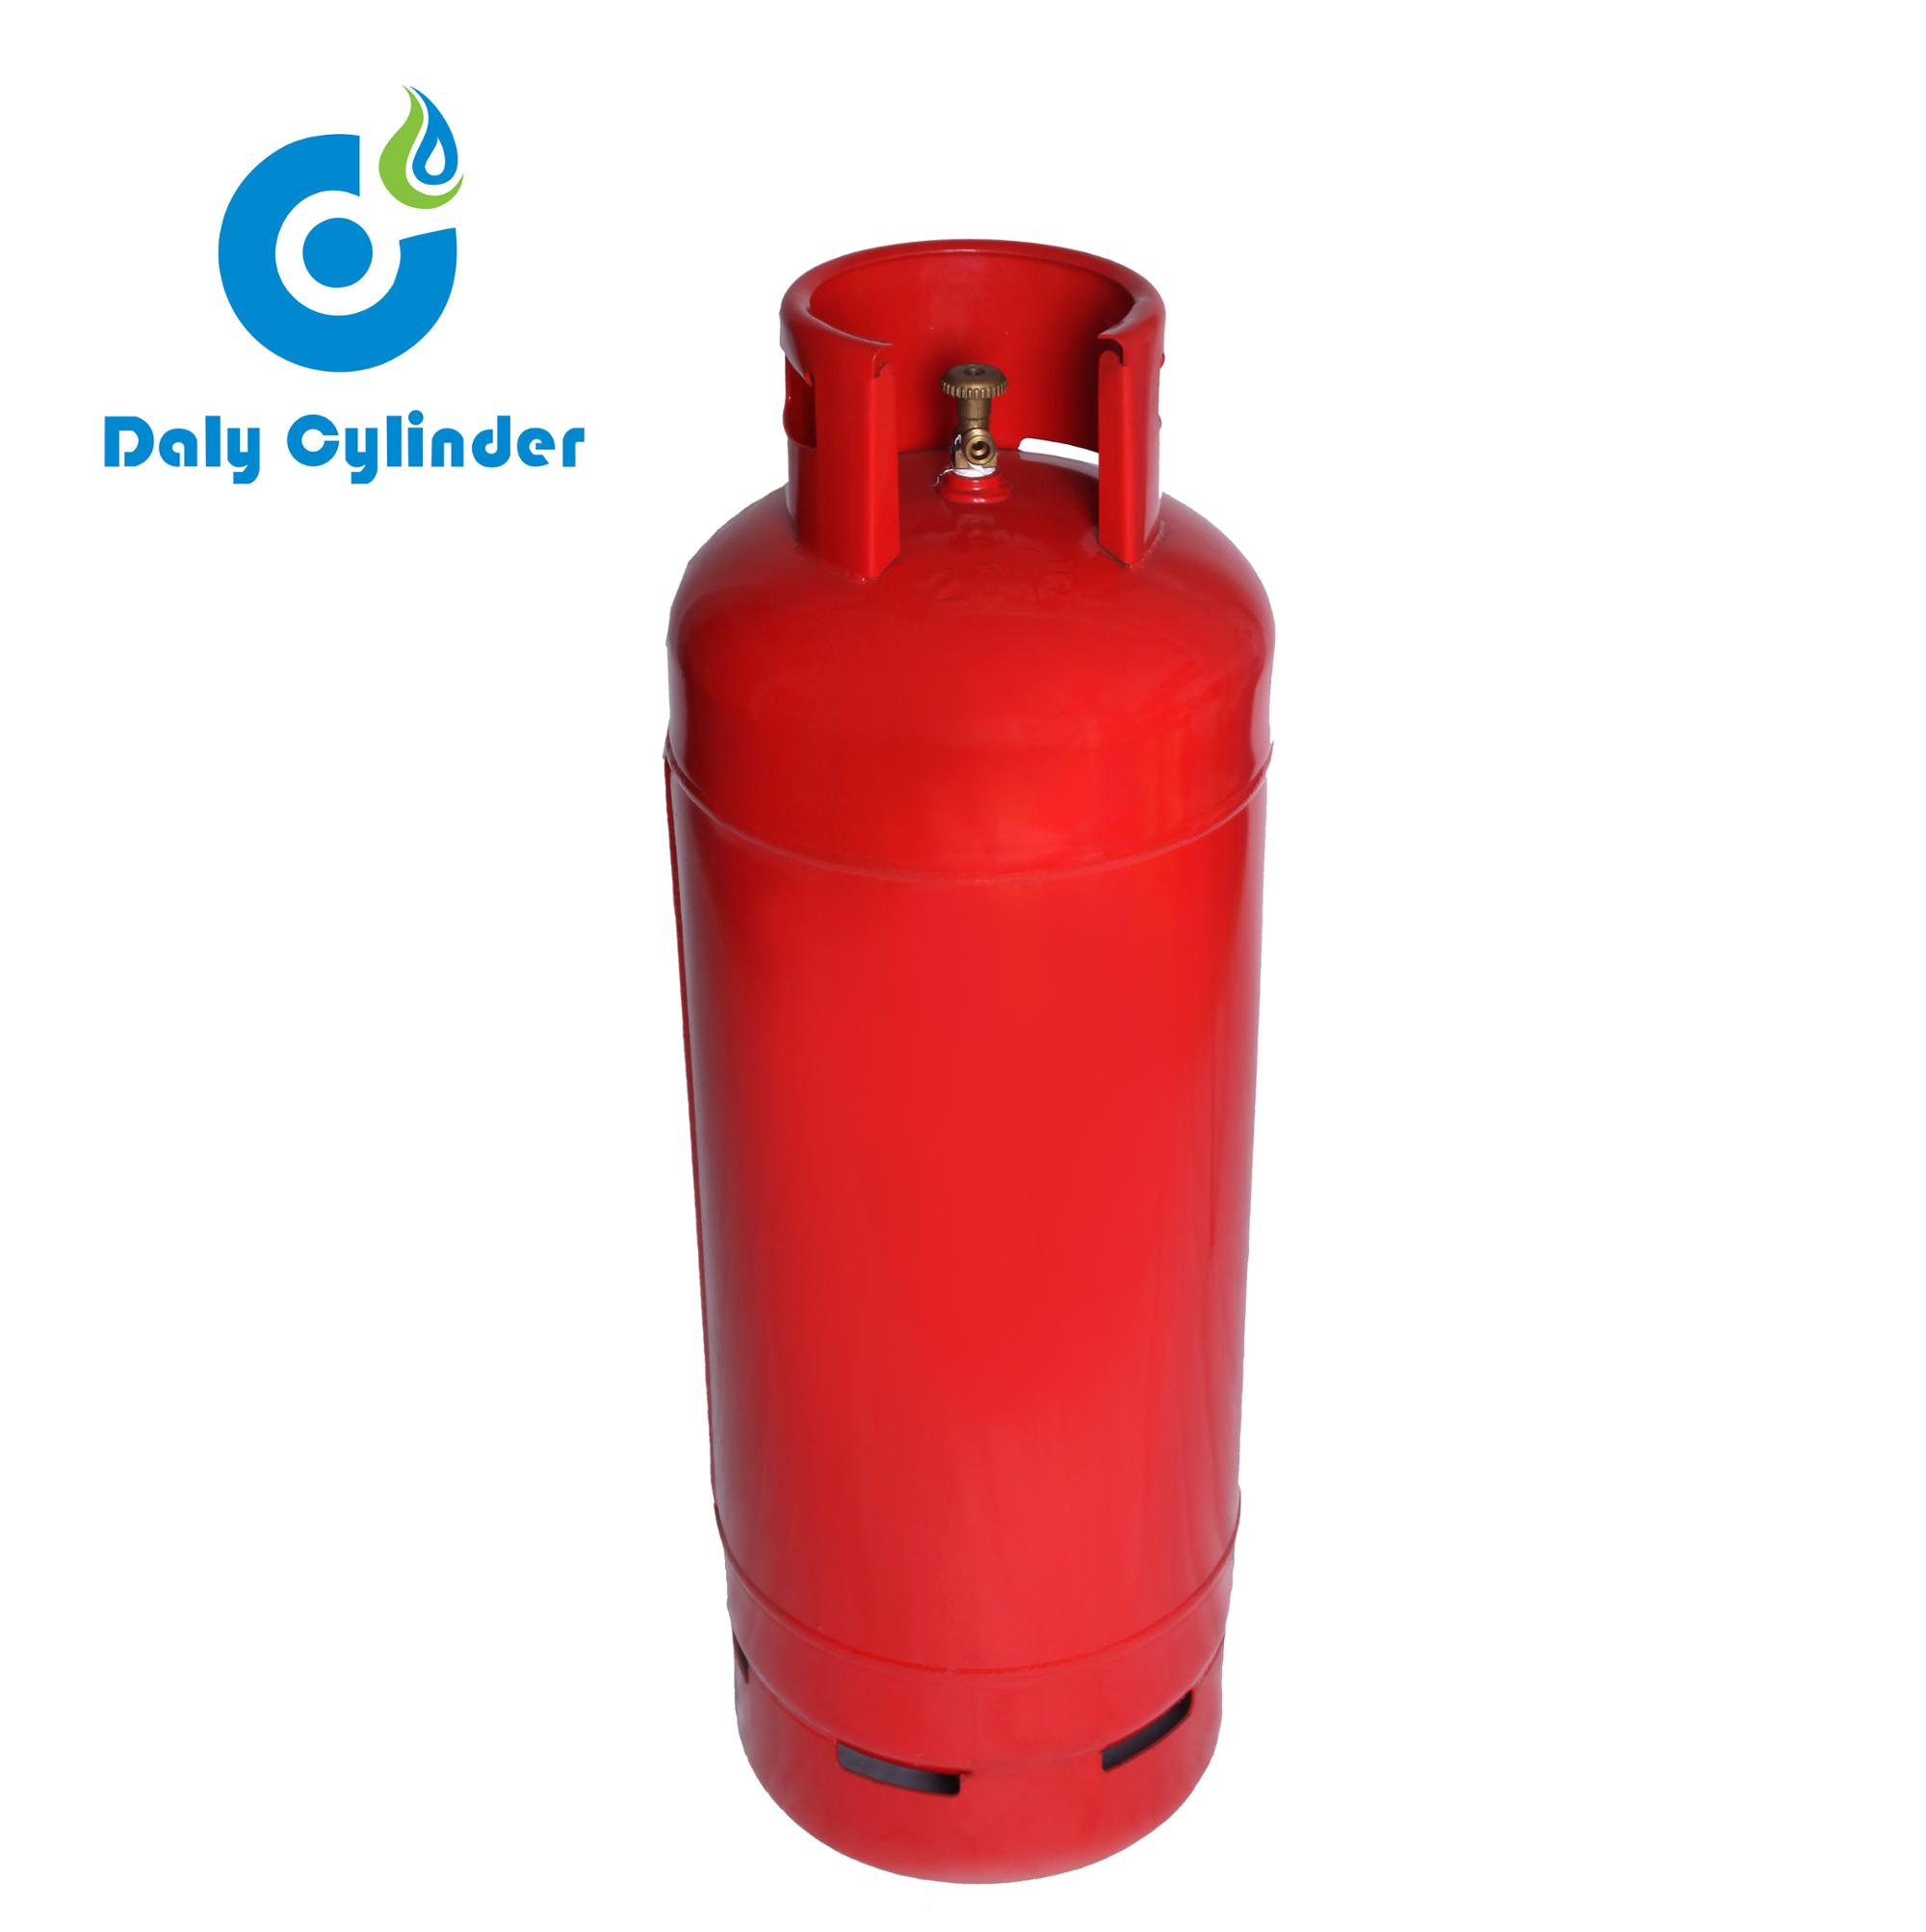 China professionele vervaardiging factory direct supply Panama universele lege 50 kg composiet lpg gasfles prijs